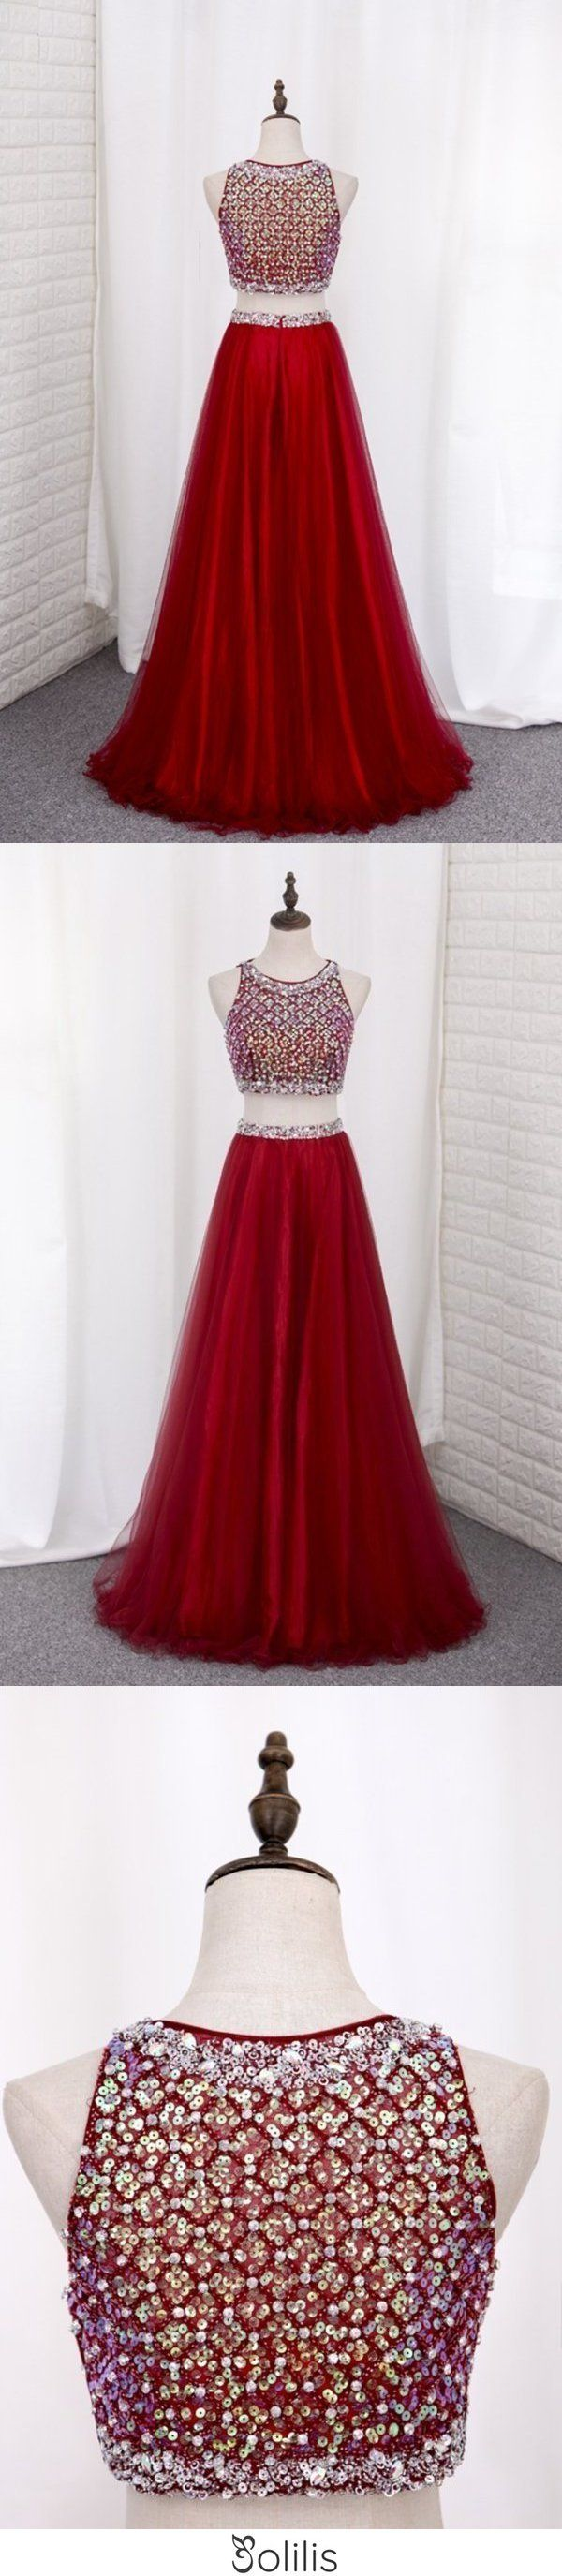 Two Pieces Bateau Prom Dress Beaded Bodice A Line Tulle ...